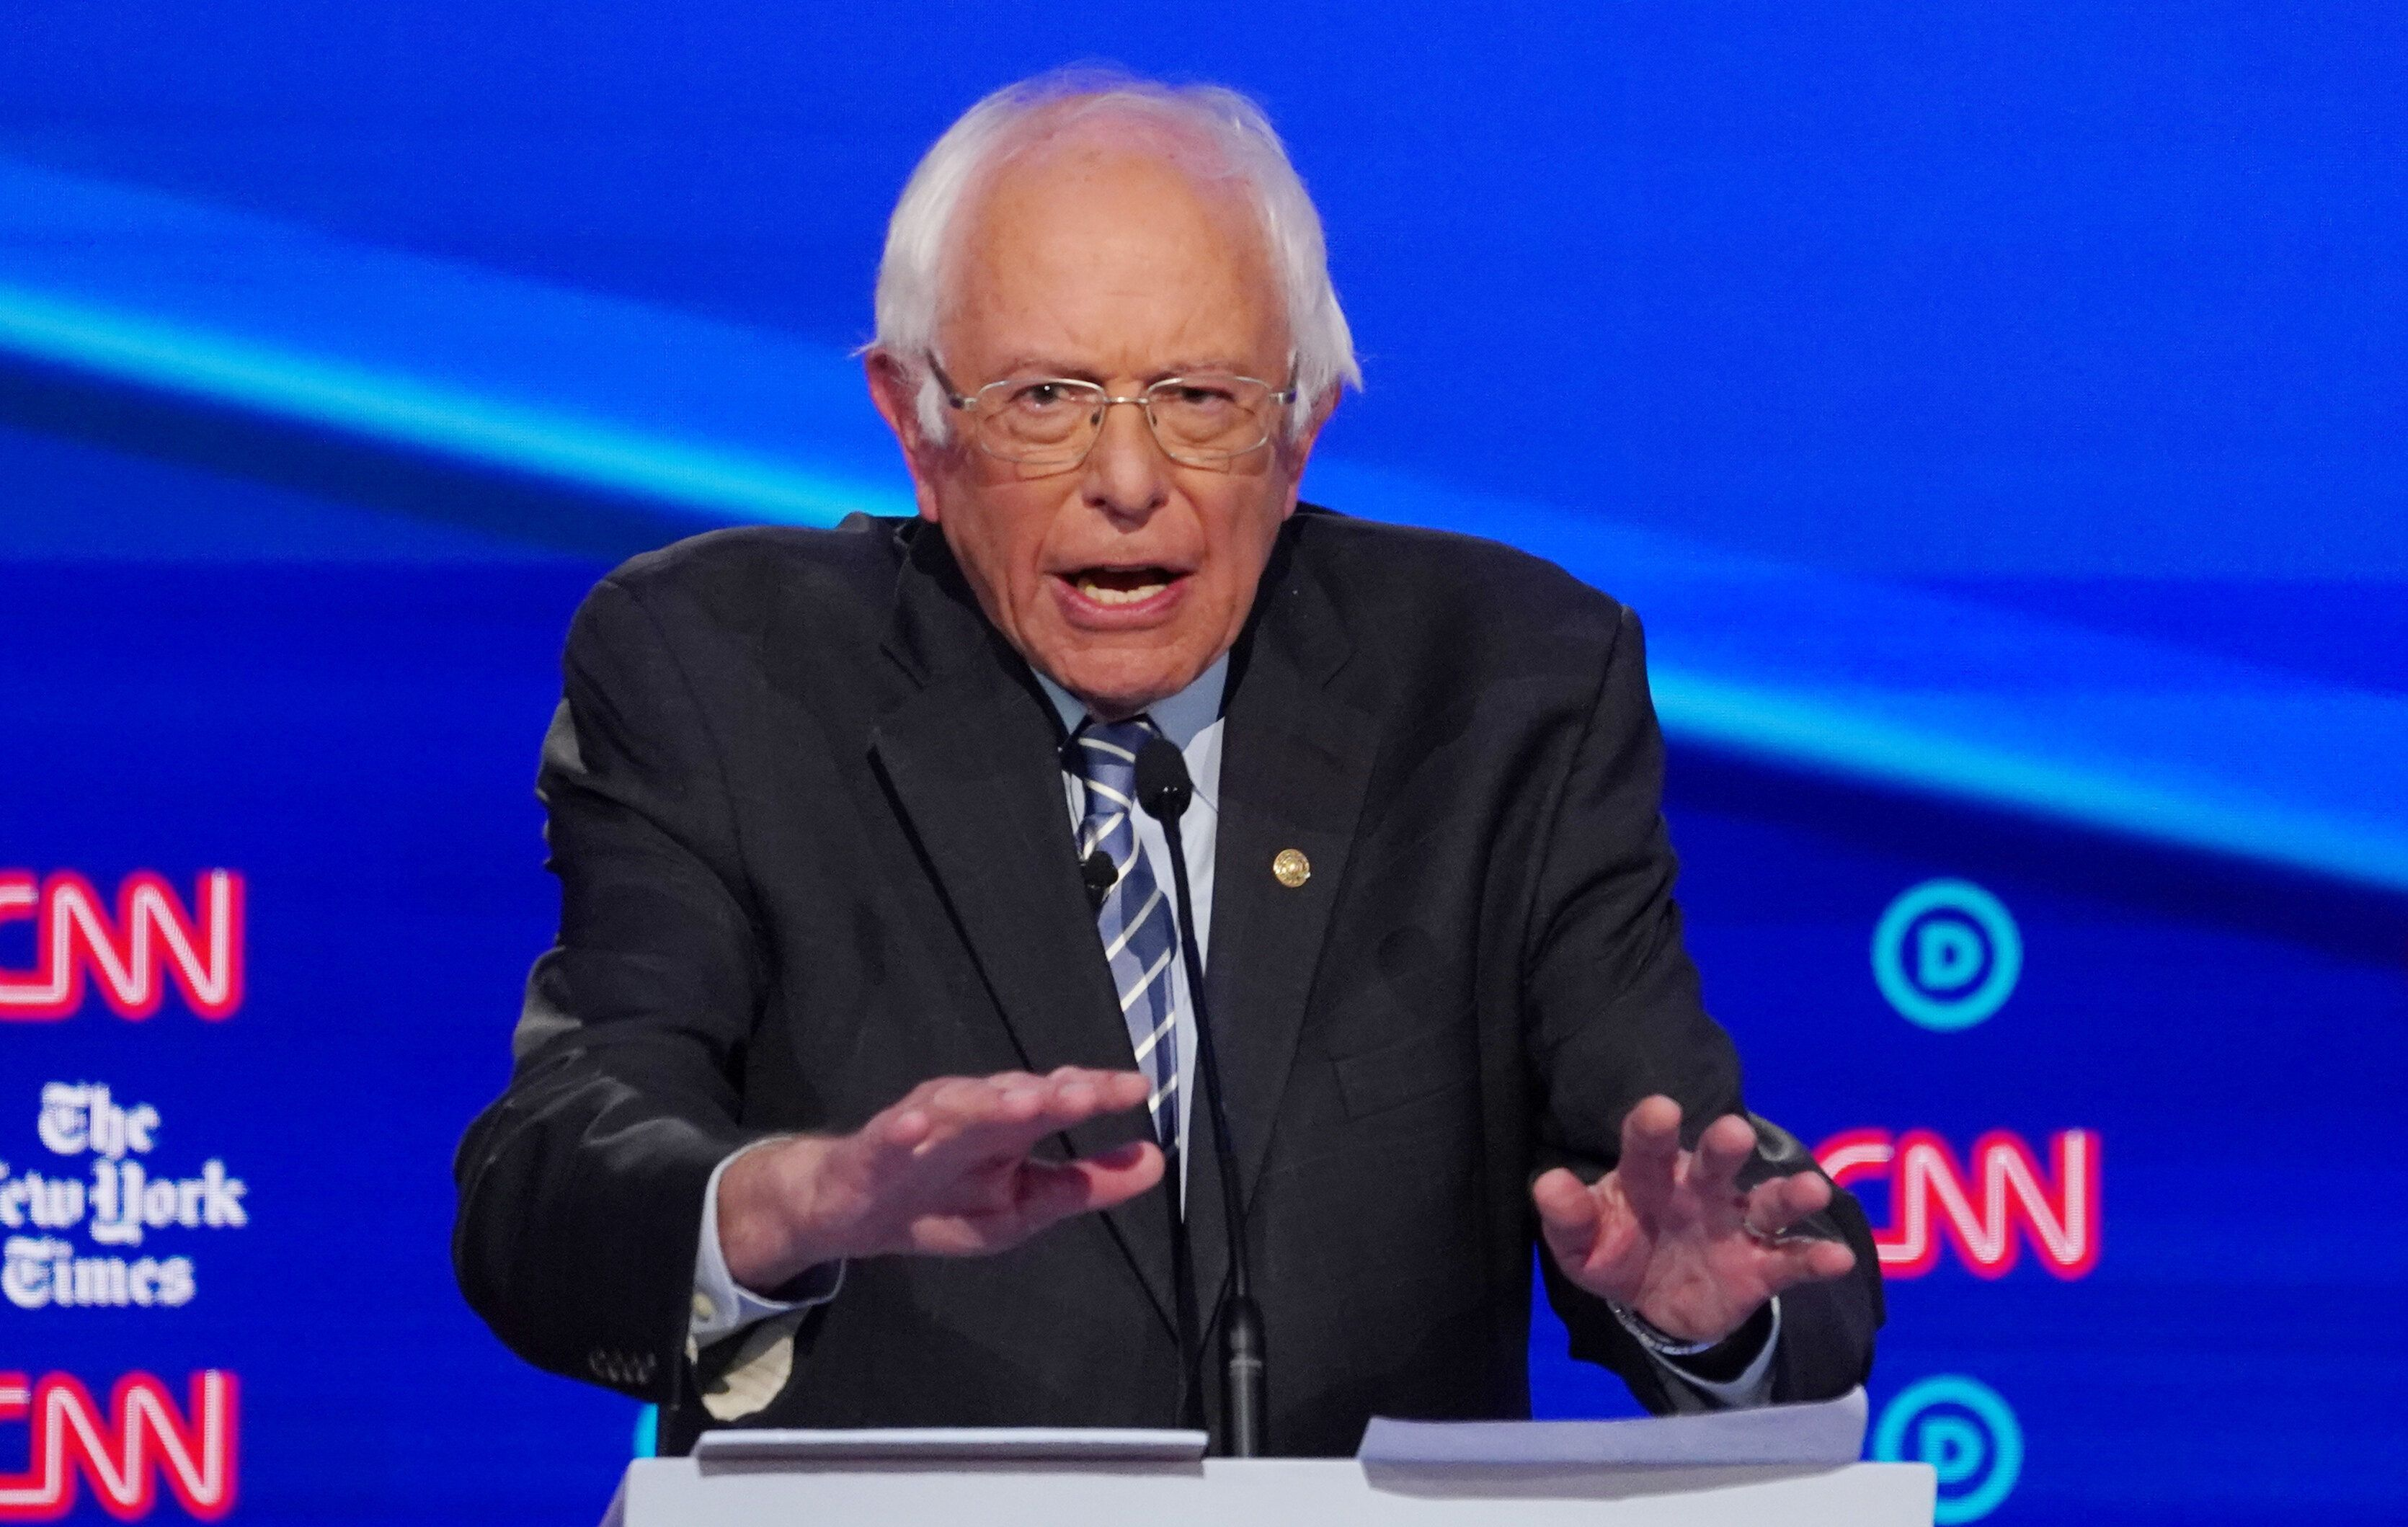 Sanders Demonstrated His Health In The ...